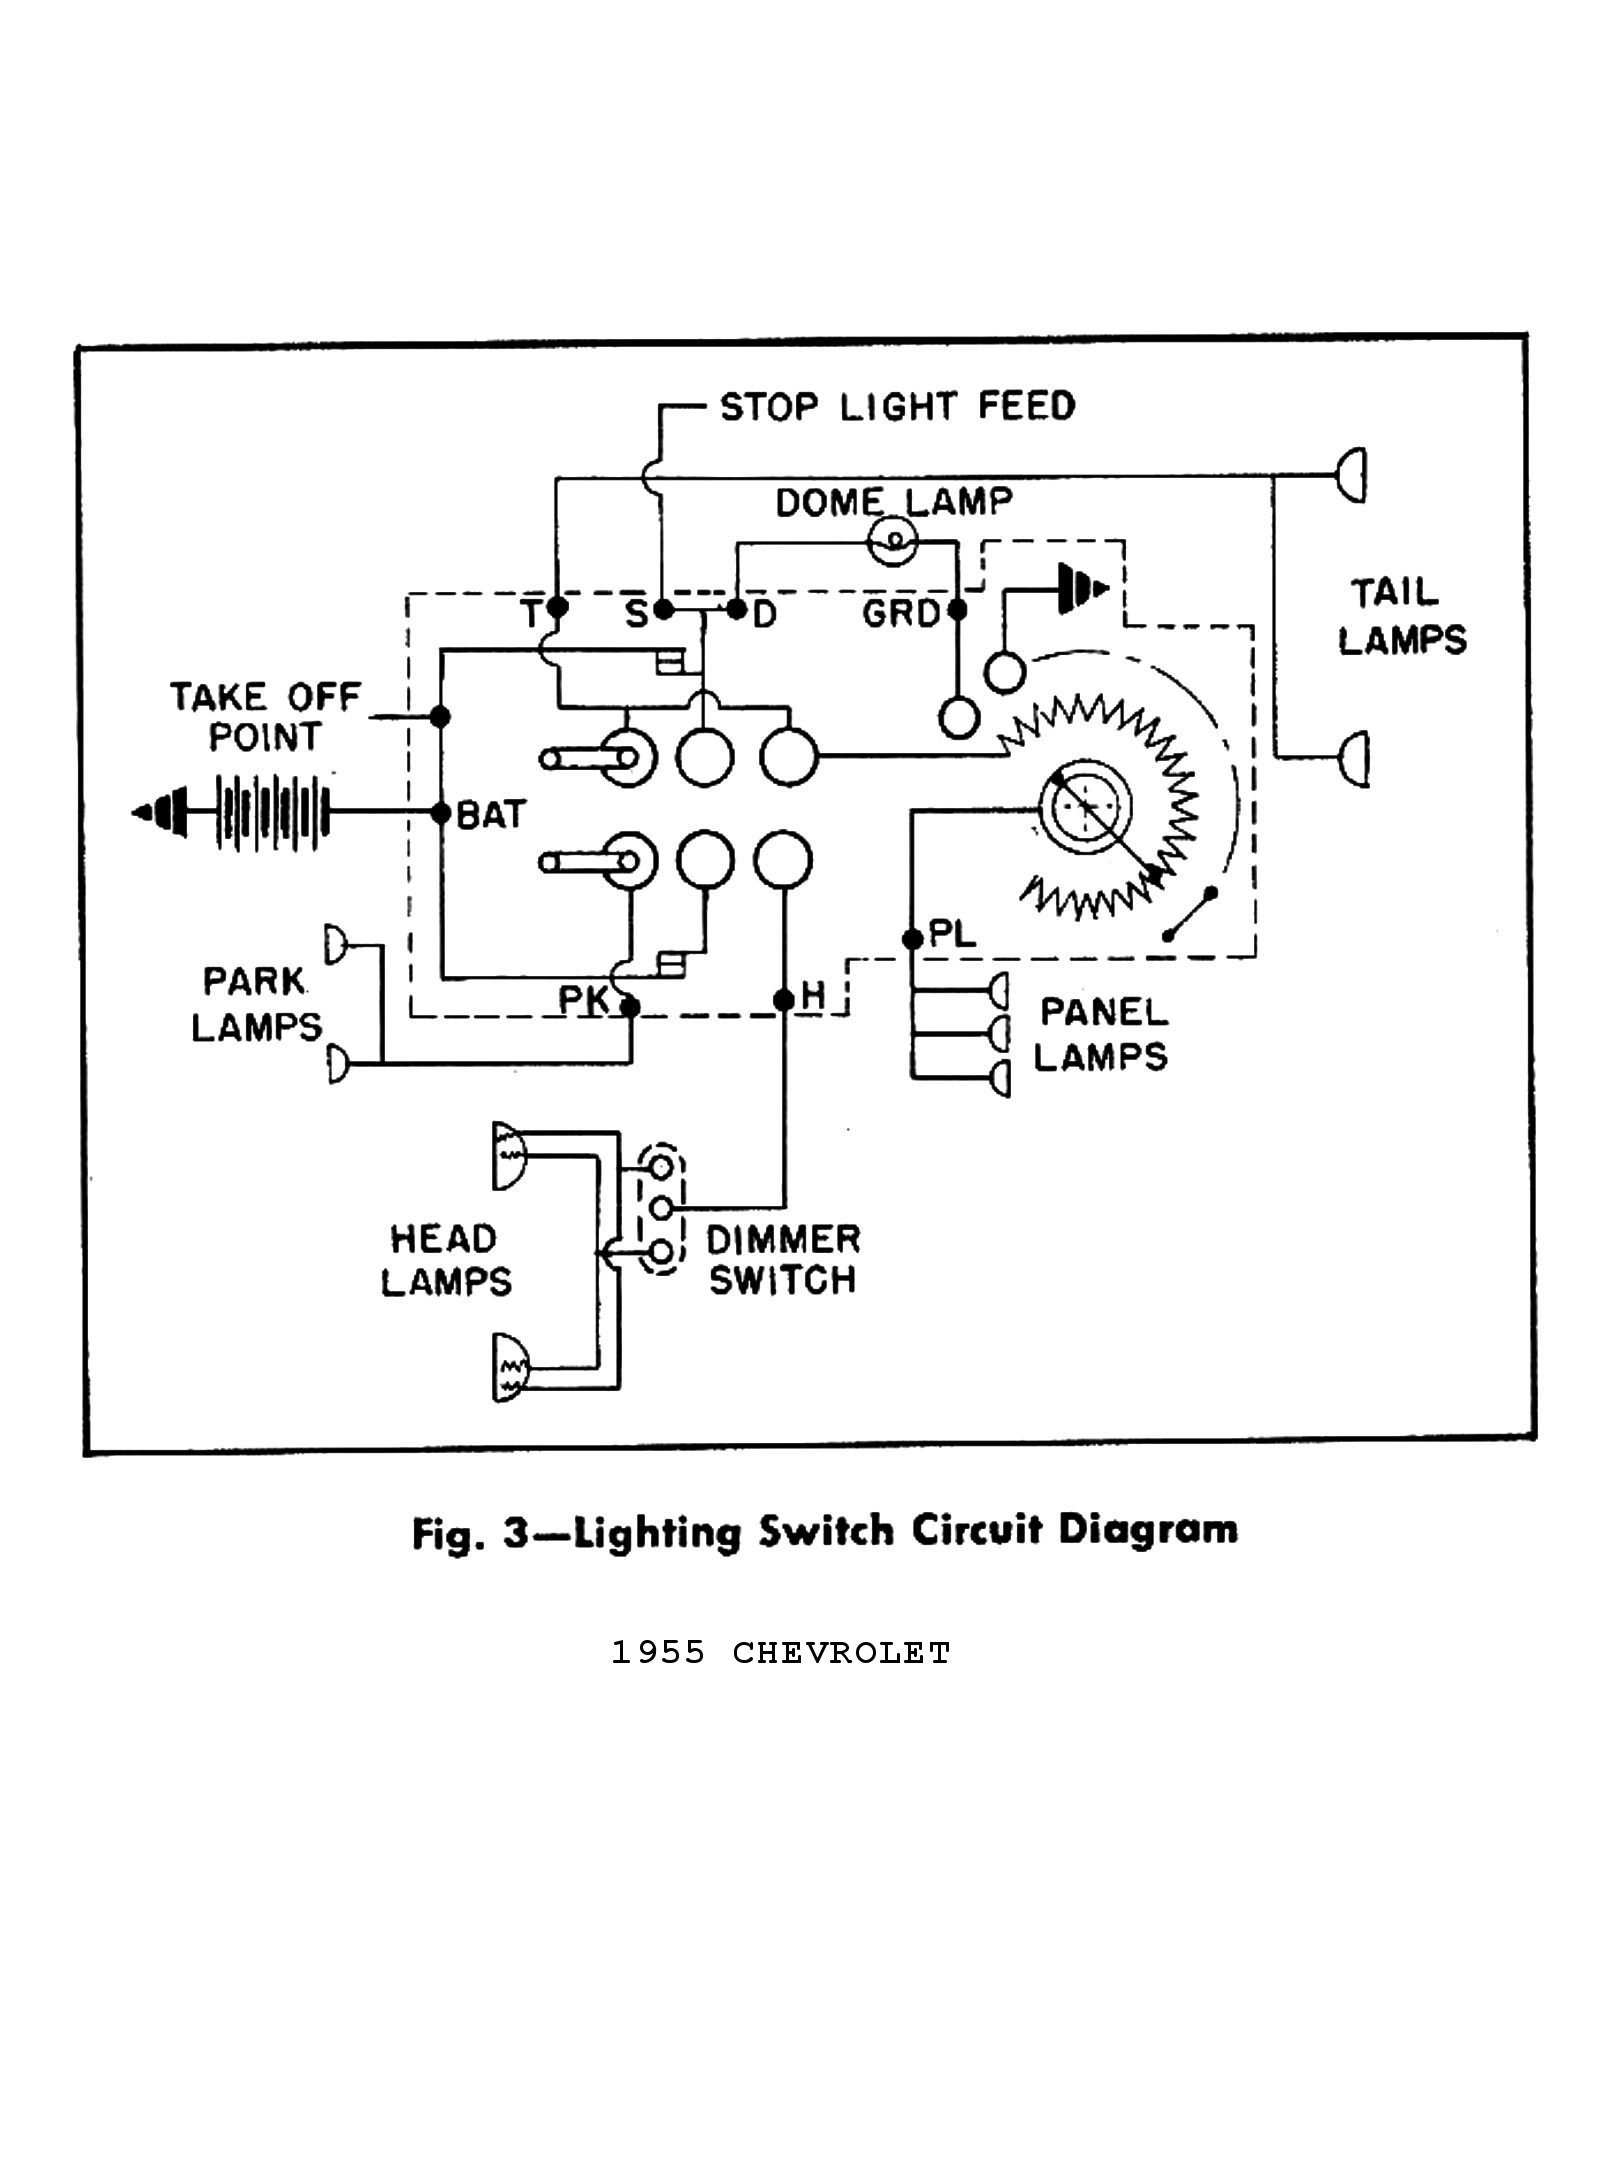 Wiring Diagram Dimmer Switch : Chevy dimmer switch wiring diagram get free image about